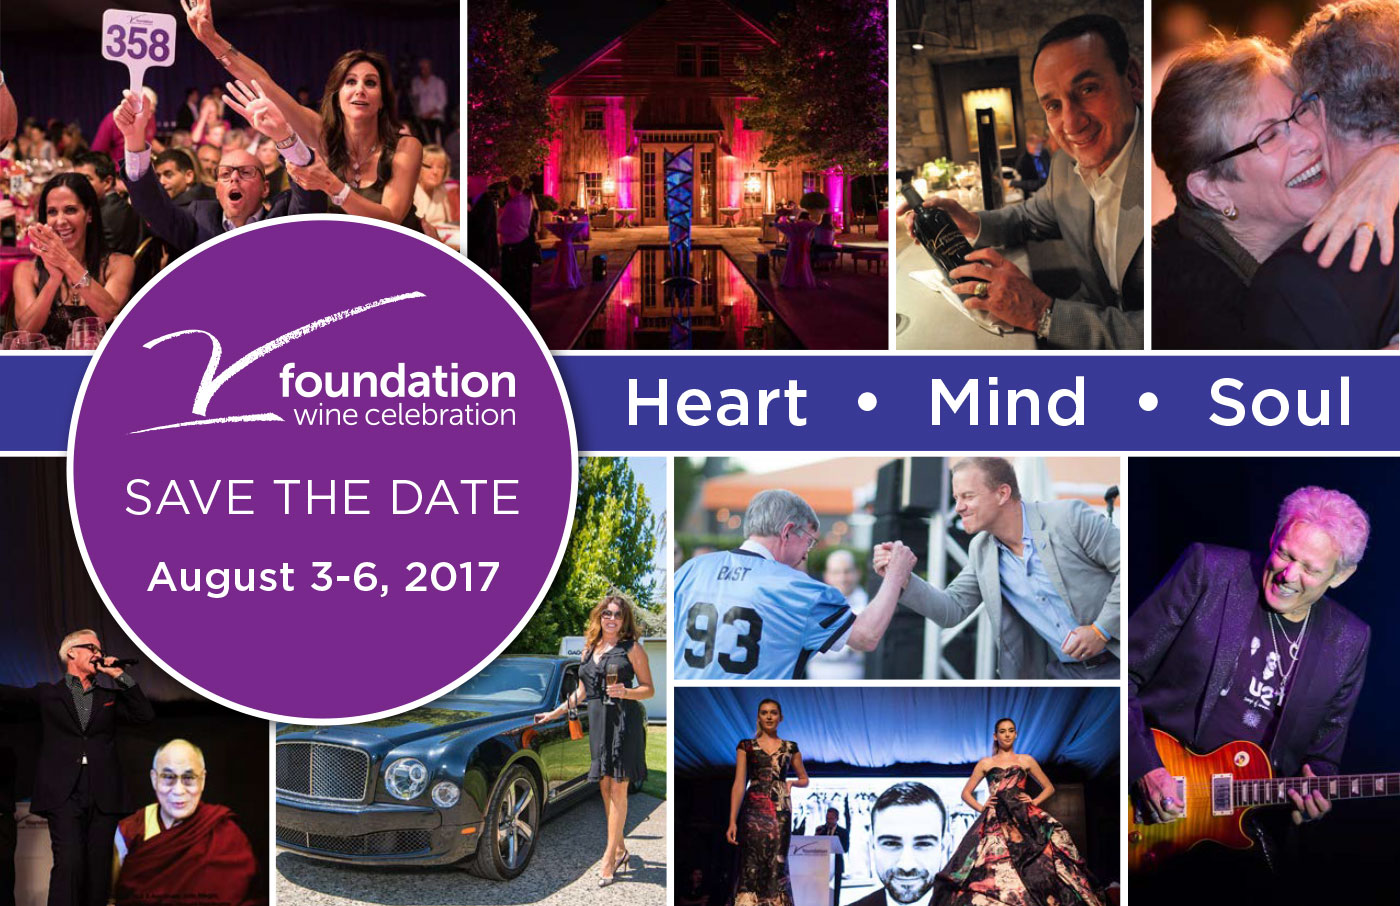 Save the Date: Aug 3 - 6, 2017